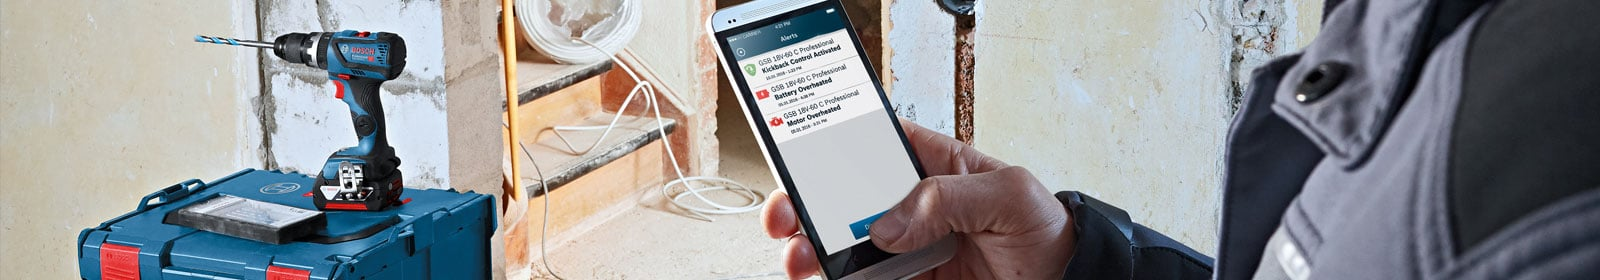 Get Connected with the Connectivity Module from Bosch